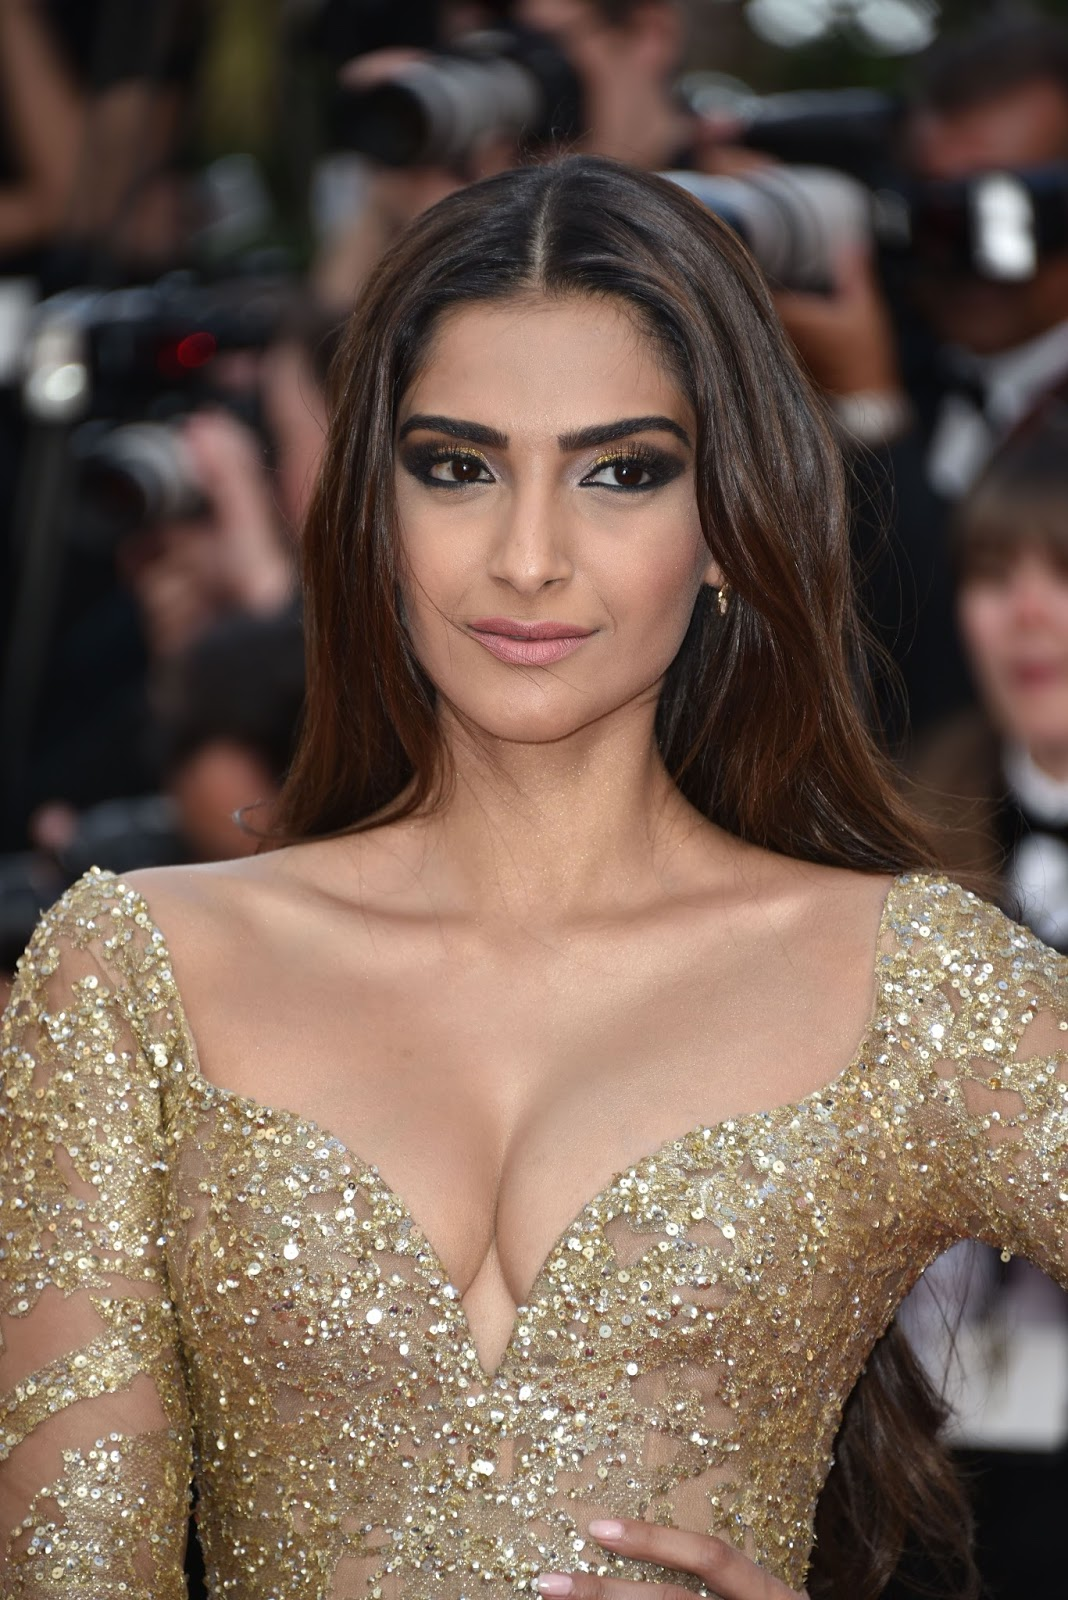 Sonam Kapoor Sexiest Cleavage Show In Elie Saab Couture At -2812